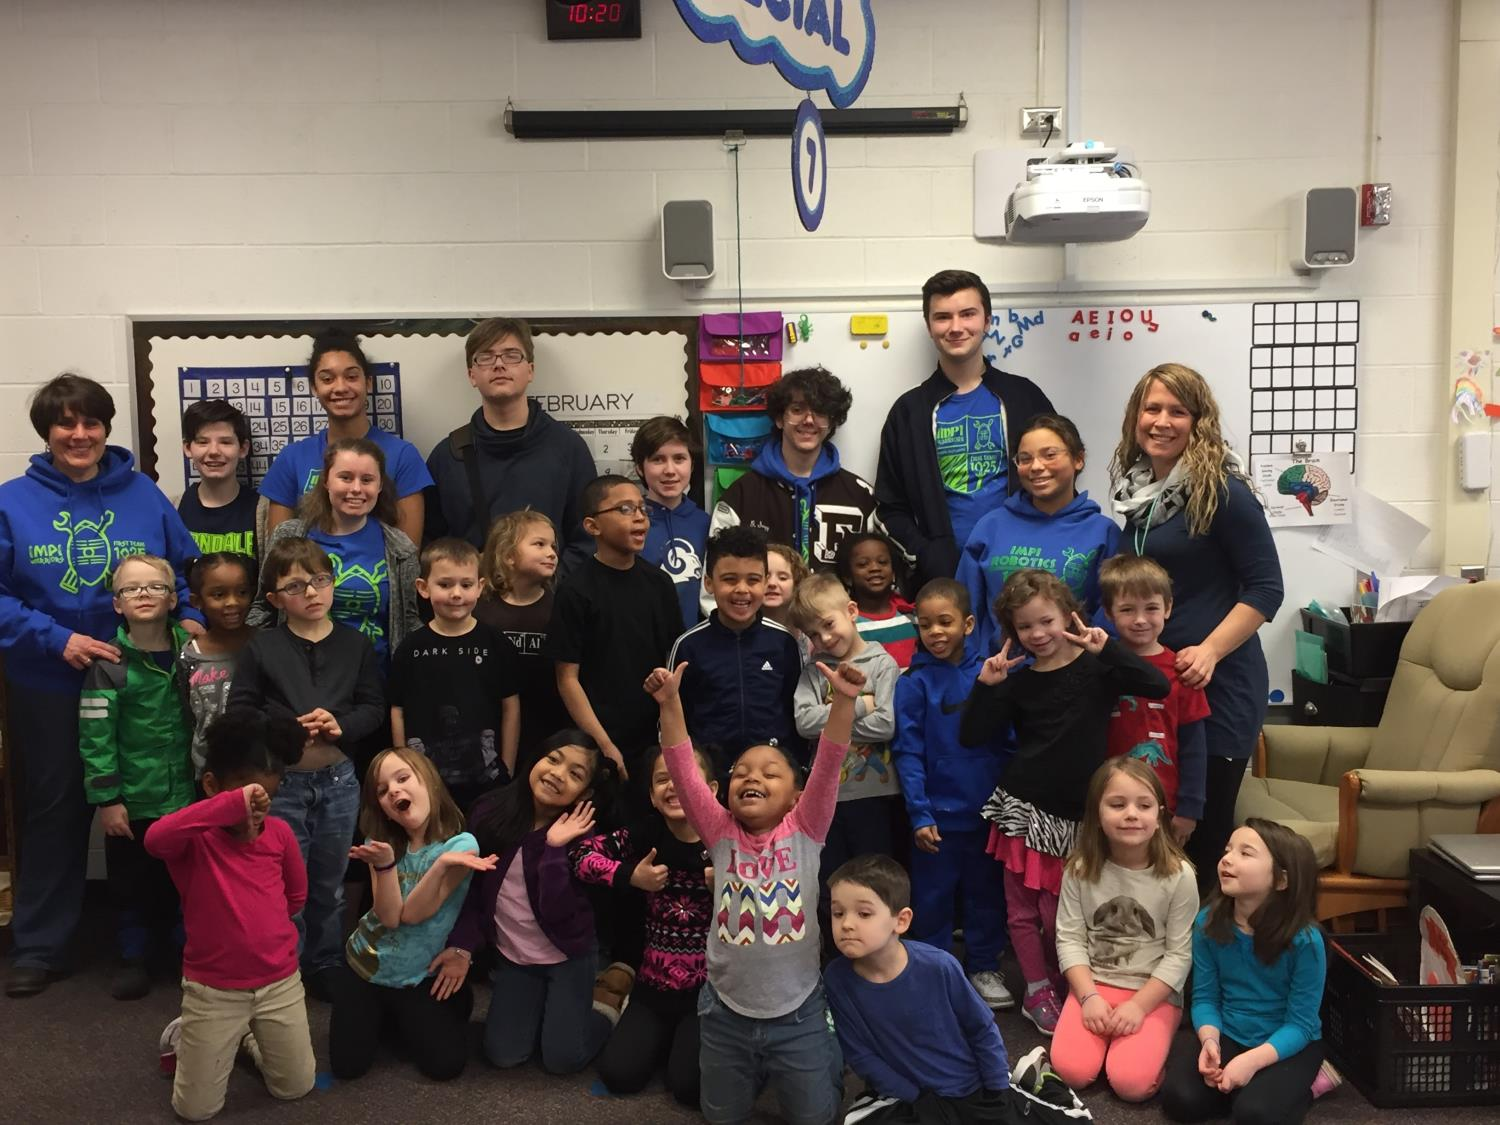 Impi Robotics team members stand with Ms. Pirronello's Kindergarten class after a day of coding fun.